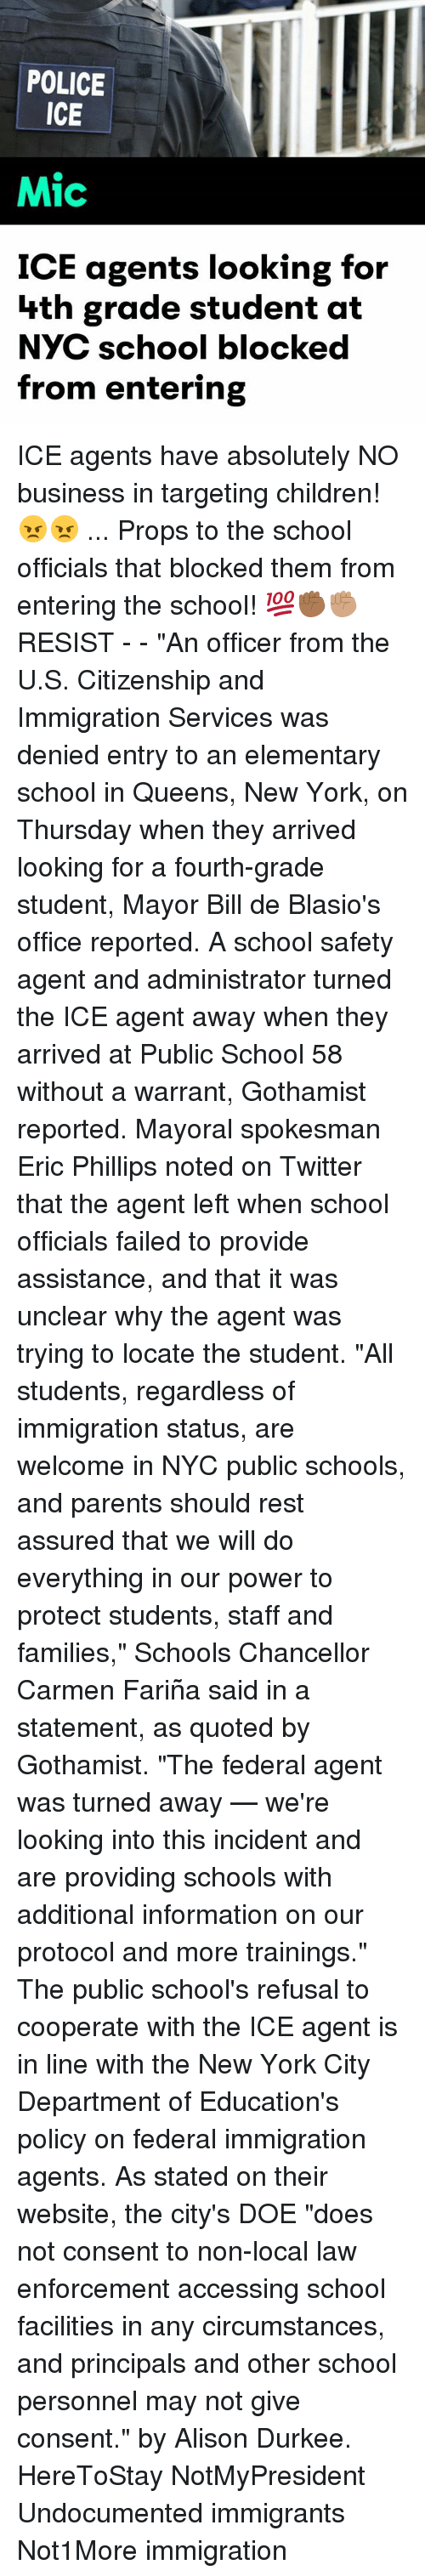 "Children, Doe, and Memes: POLICE  ICE  Mic  ICE agents looking for  hth grade student at  NYC school blocked  from entering ICE agents have absolutely NO business in targeting children! 😠😠 ... Props to the school officials that blocked them from entering the school! 💯✊🏾✊🏽 RESIST - - ""An officer from the U.S. Citizenship and Immigration Services was denied entry to an elementary school in Queens, New York, on Thursday when they arrived looking for a fourth-grade student, Mayor Bill de Blasio's office reported. A school safety agent and administrator turned the ICE agent away when they arrived at Public School 58 without a warrant, Gothamist reported. Mayoral spokesman Eric Phillips noted on Twitter that the agent left when school officials failed to provide assistance, and that it was unclear why the agent was trying to locate the student. ""All students, regardless of immigration status, are welcome in NYC public schools, and parents should rest assured that we will do everything in our power to protect students, staff and families,"" Schools Chancellor Carmen Fariña said in a statement, as quoted by Gothamist. ""The federal agent was turned away — we're looking into this incident and are providing schools with additional information on our protocol and more trainings."" The public school's refusal to cooperate with the ICE agent is in line with the New York City Department of Education's policy on federal immigration agents. As stated on their website, the city's DOE ""does not consent to non-local law enforcement accessing school facilities in any circumstances, and principals and other school personnel may not give consent."" by Alison Durkee. HereToStay NotMyPresident Undocumented immigrants Not1More immigration"